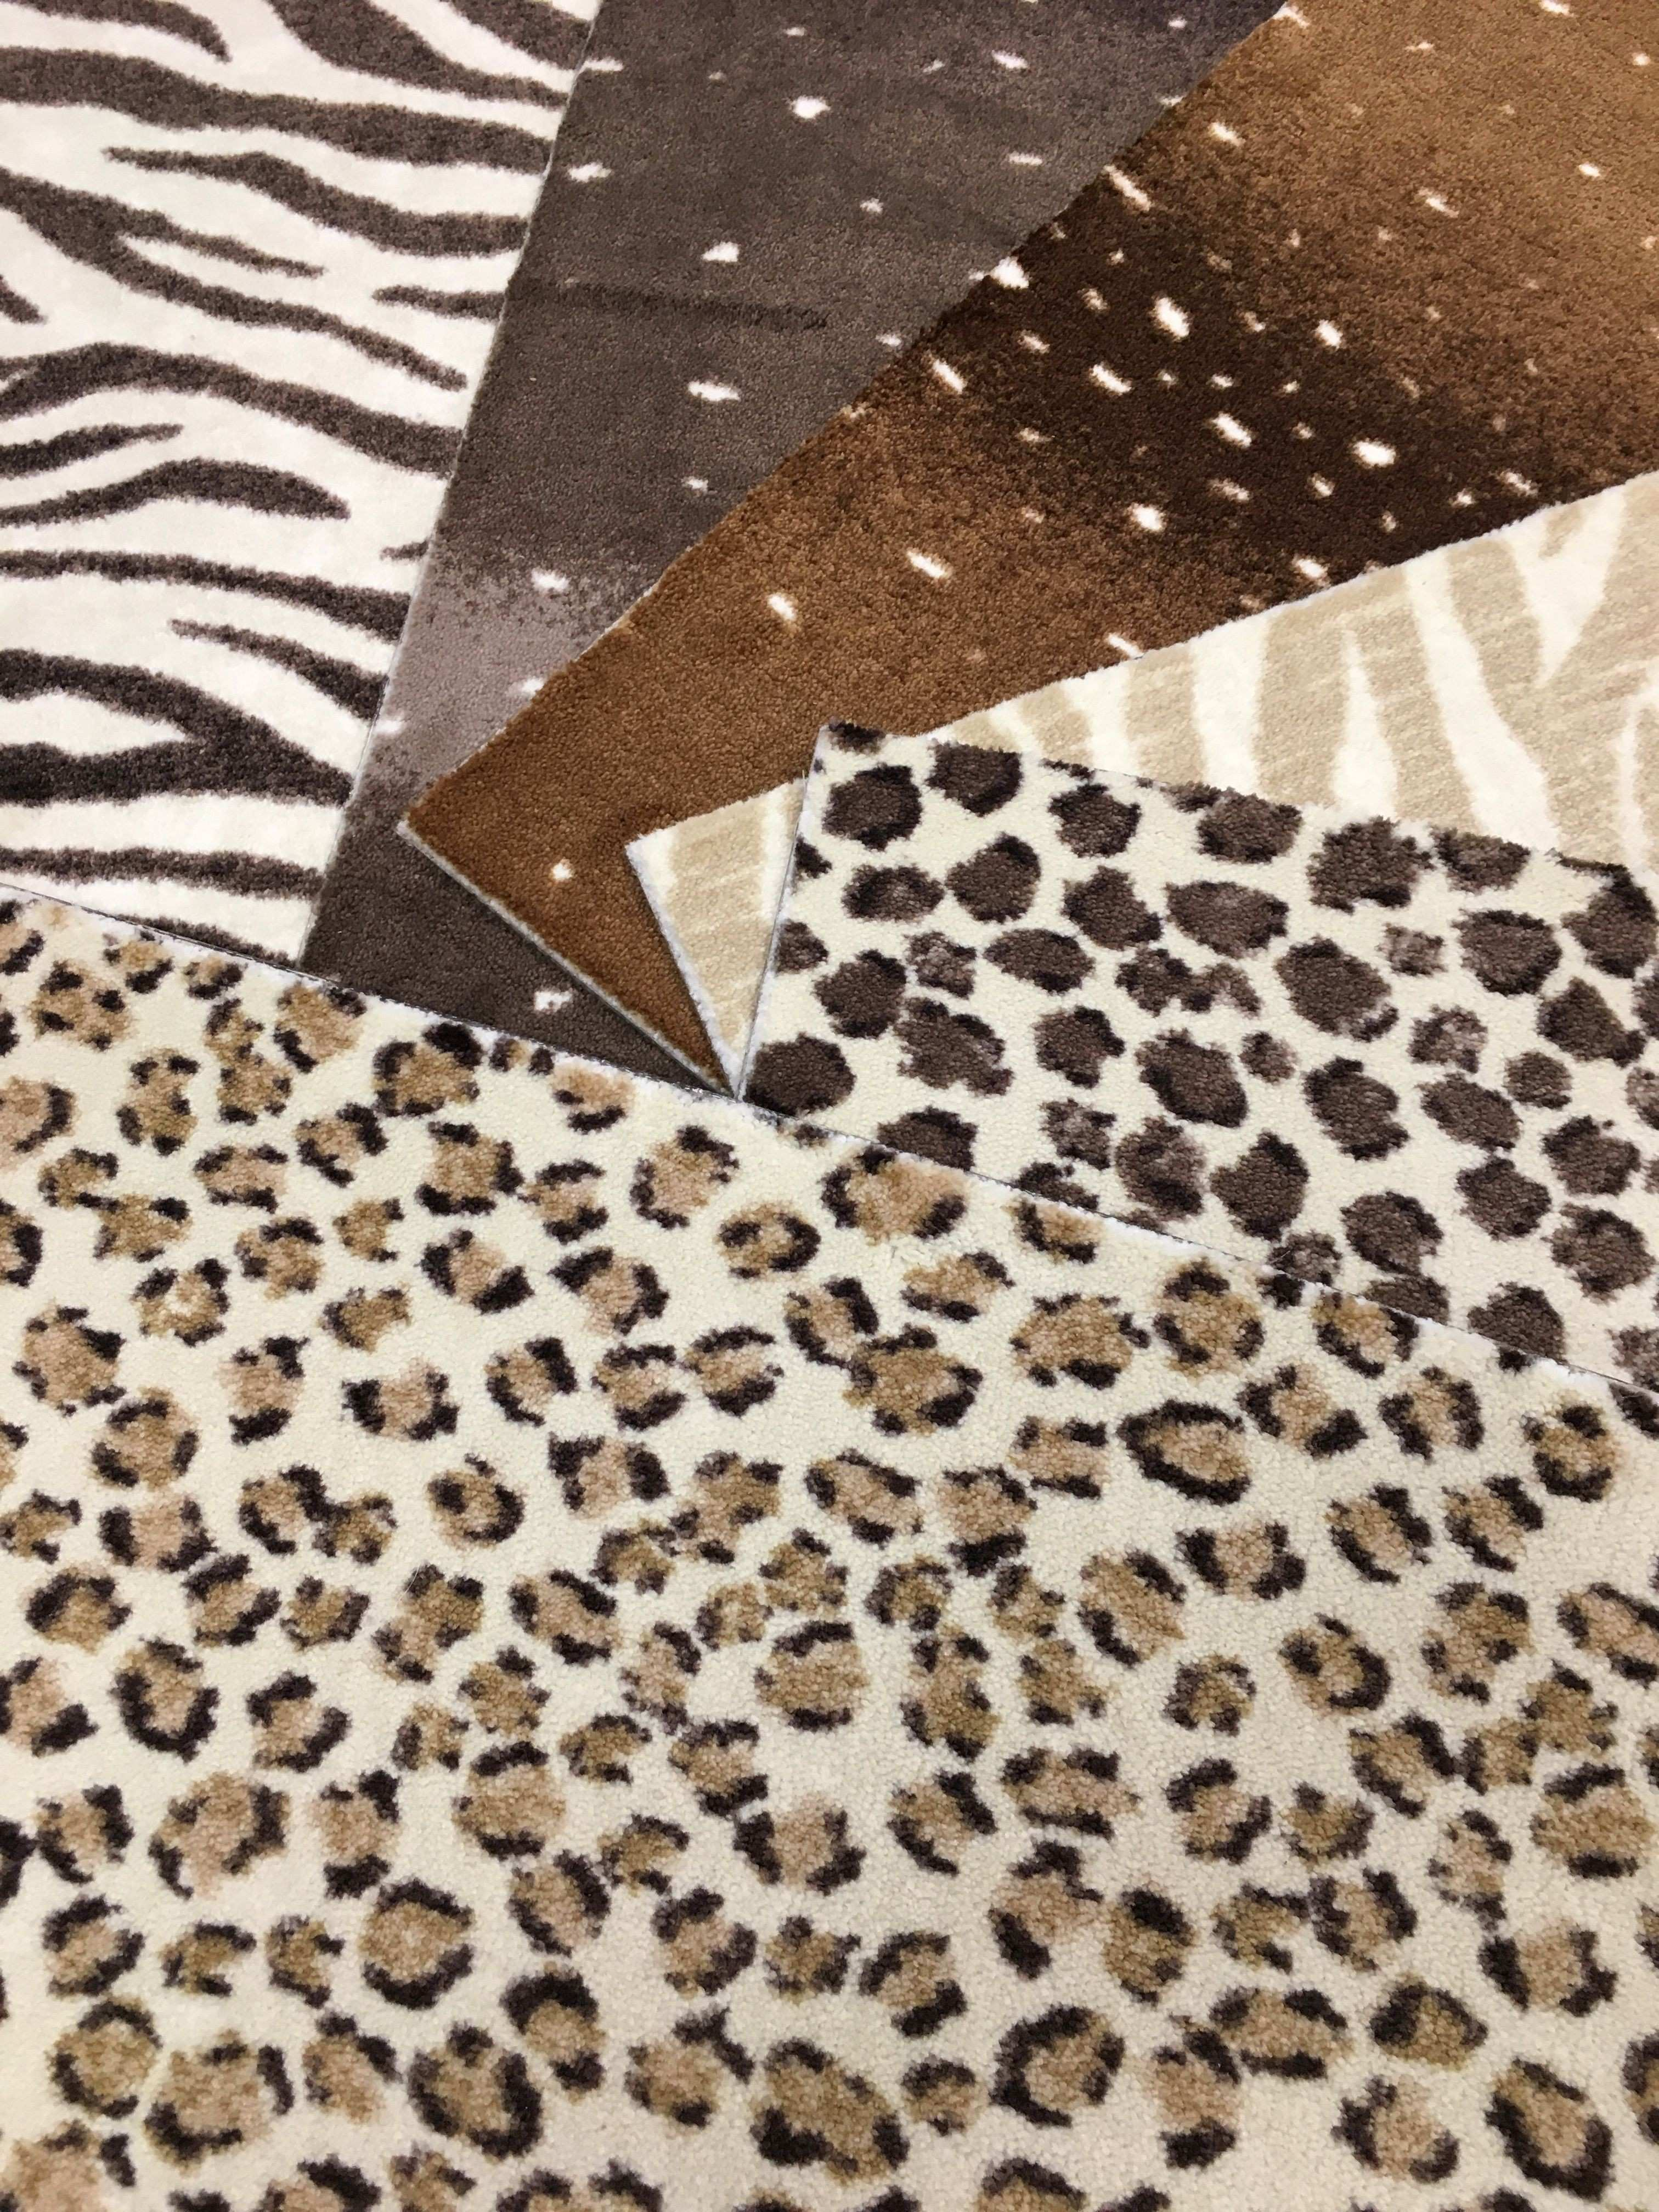 Leopard Print Wall to Wall Carpet New these Nylon Animal Patterned Pieces Can Be Installed Wall to Wall